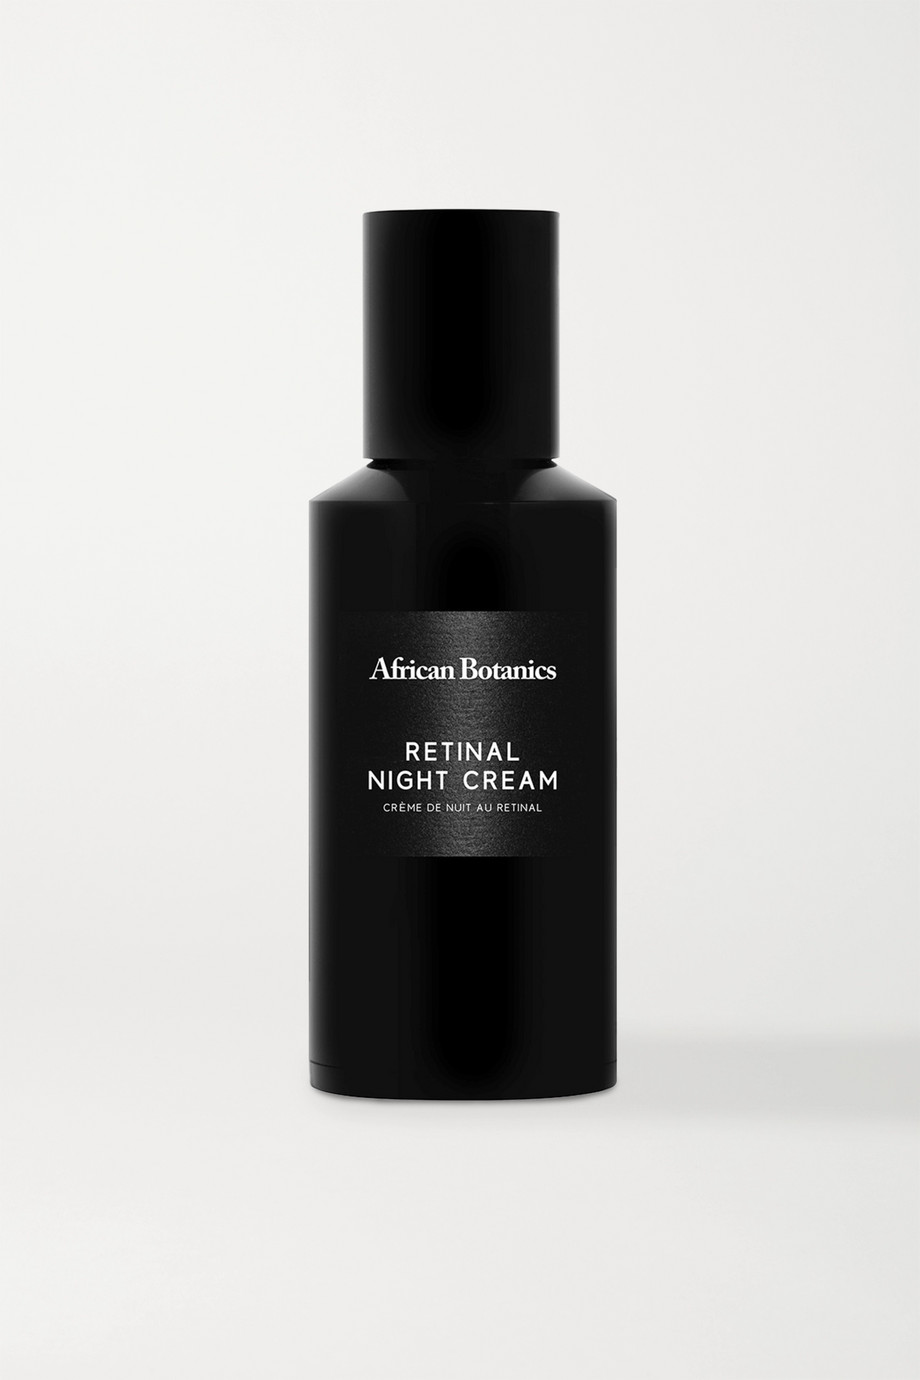 African Botanics Retinal Night Cream, 50ml